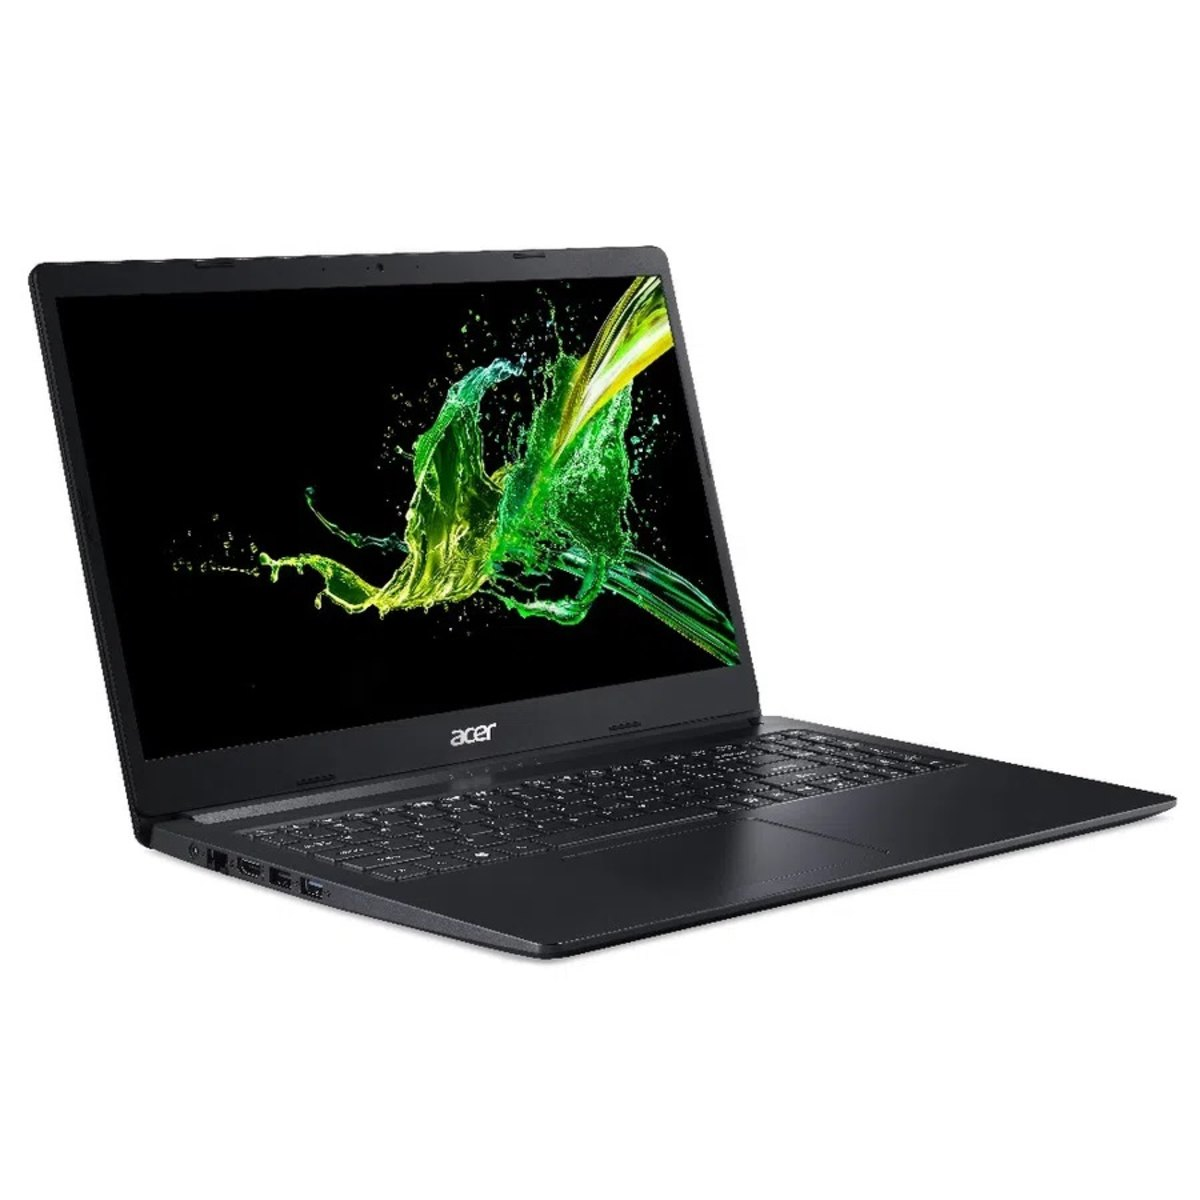 Notebook Acer A315 Intel Celeron N4000 Memoria 4gb Ssd 480gb Tela 15.6' Hd Endless Os